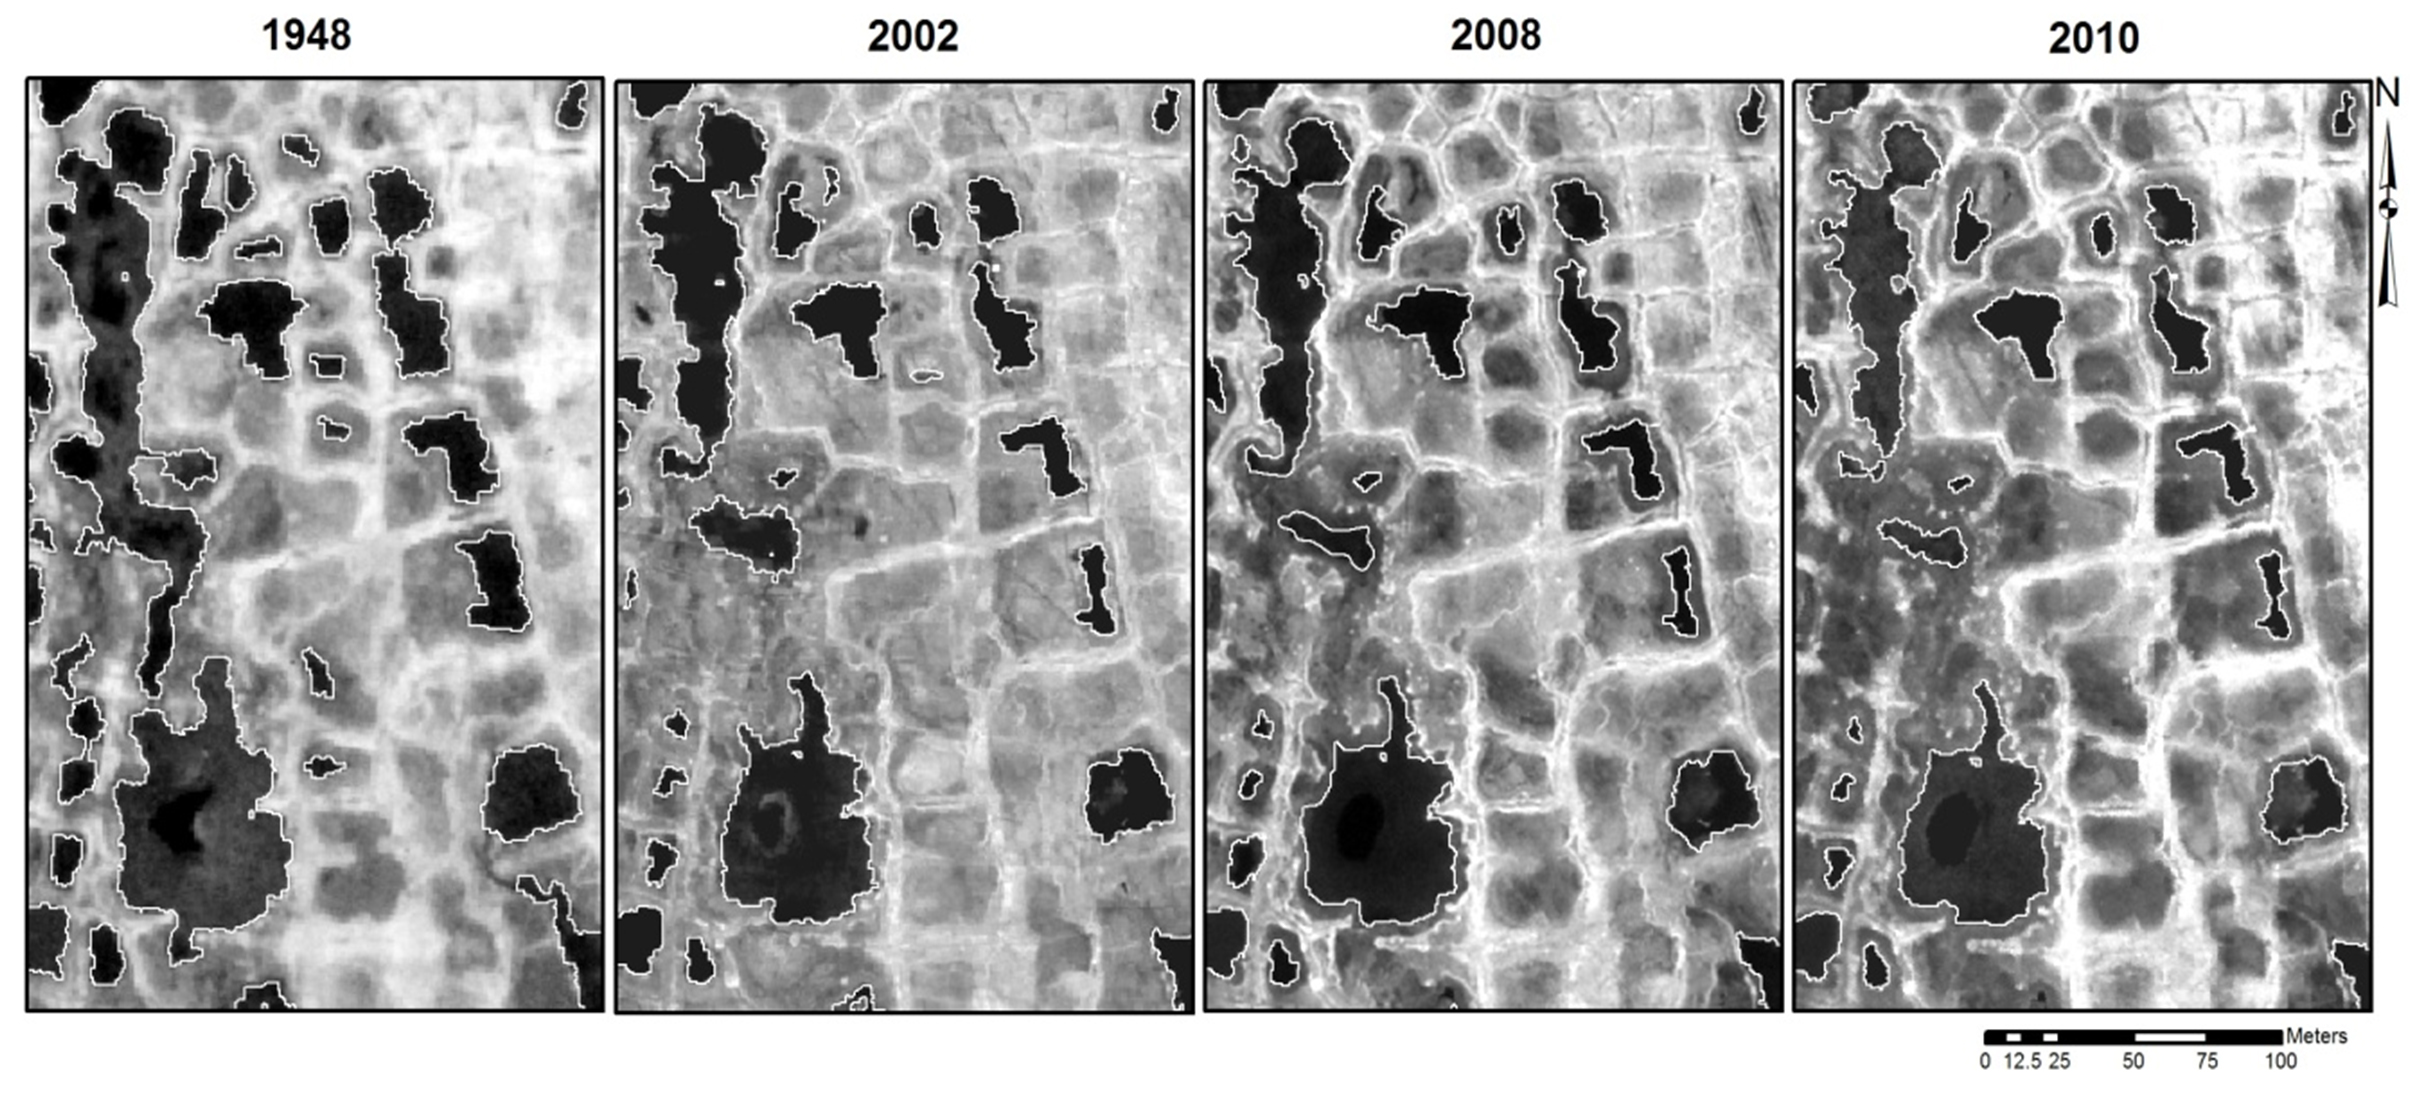 Arctic pond shrinkage between 1948 and 2010